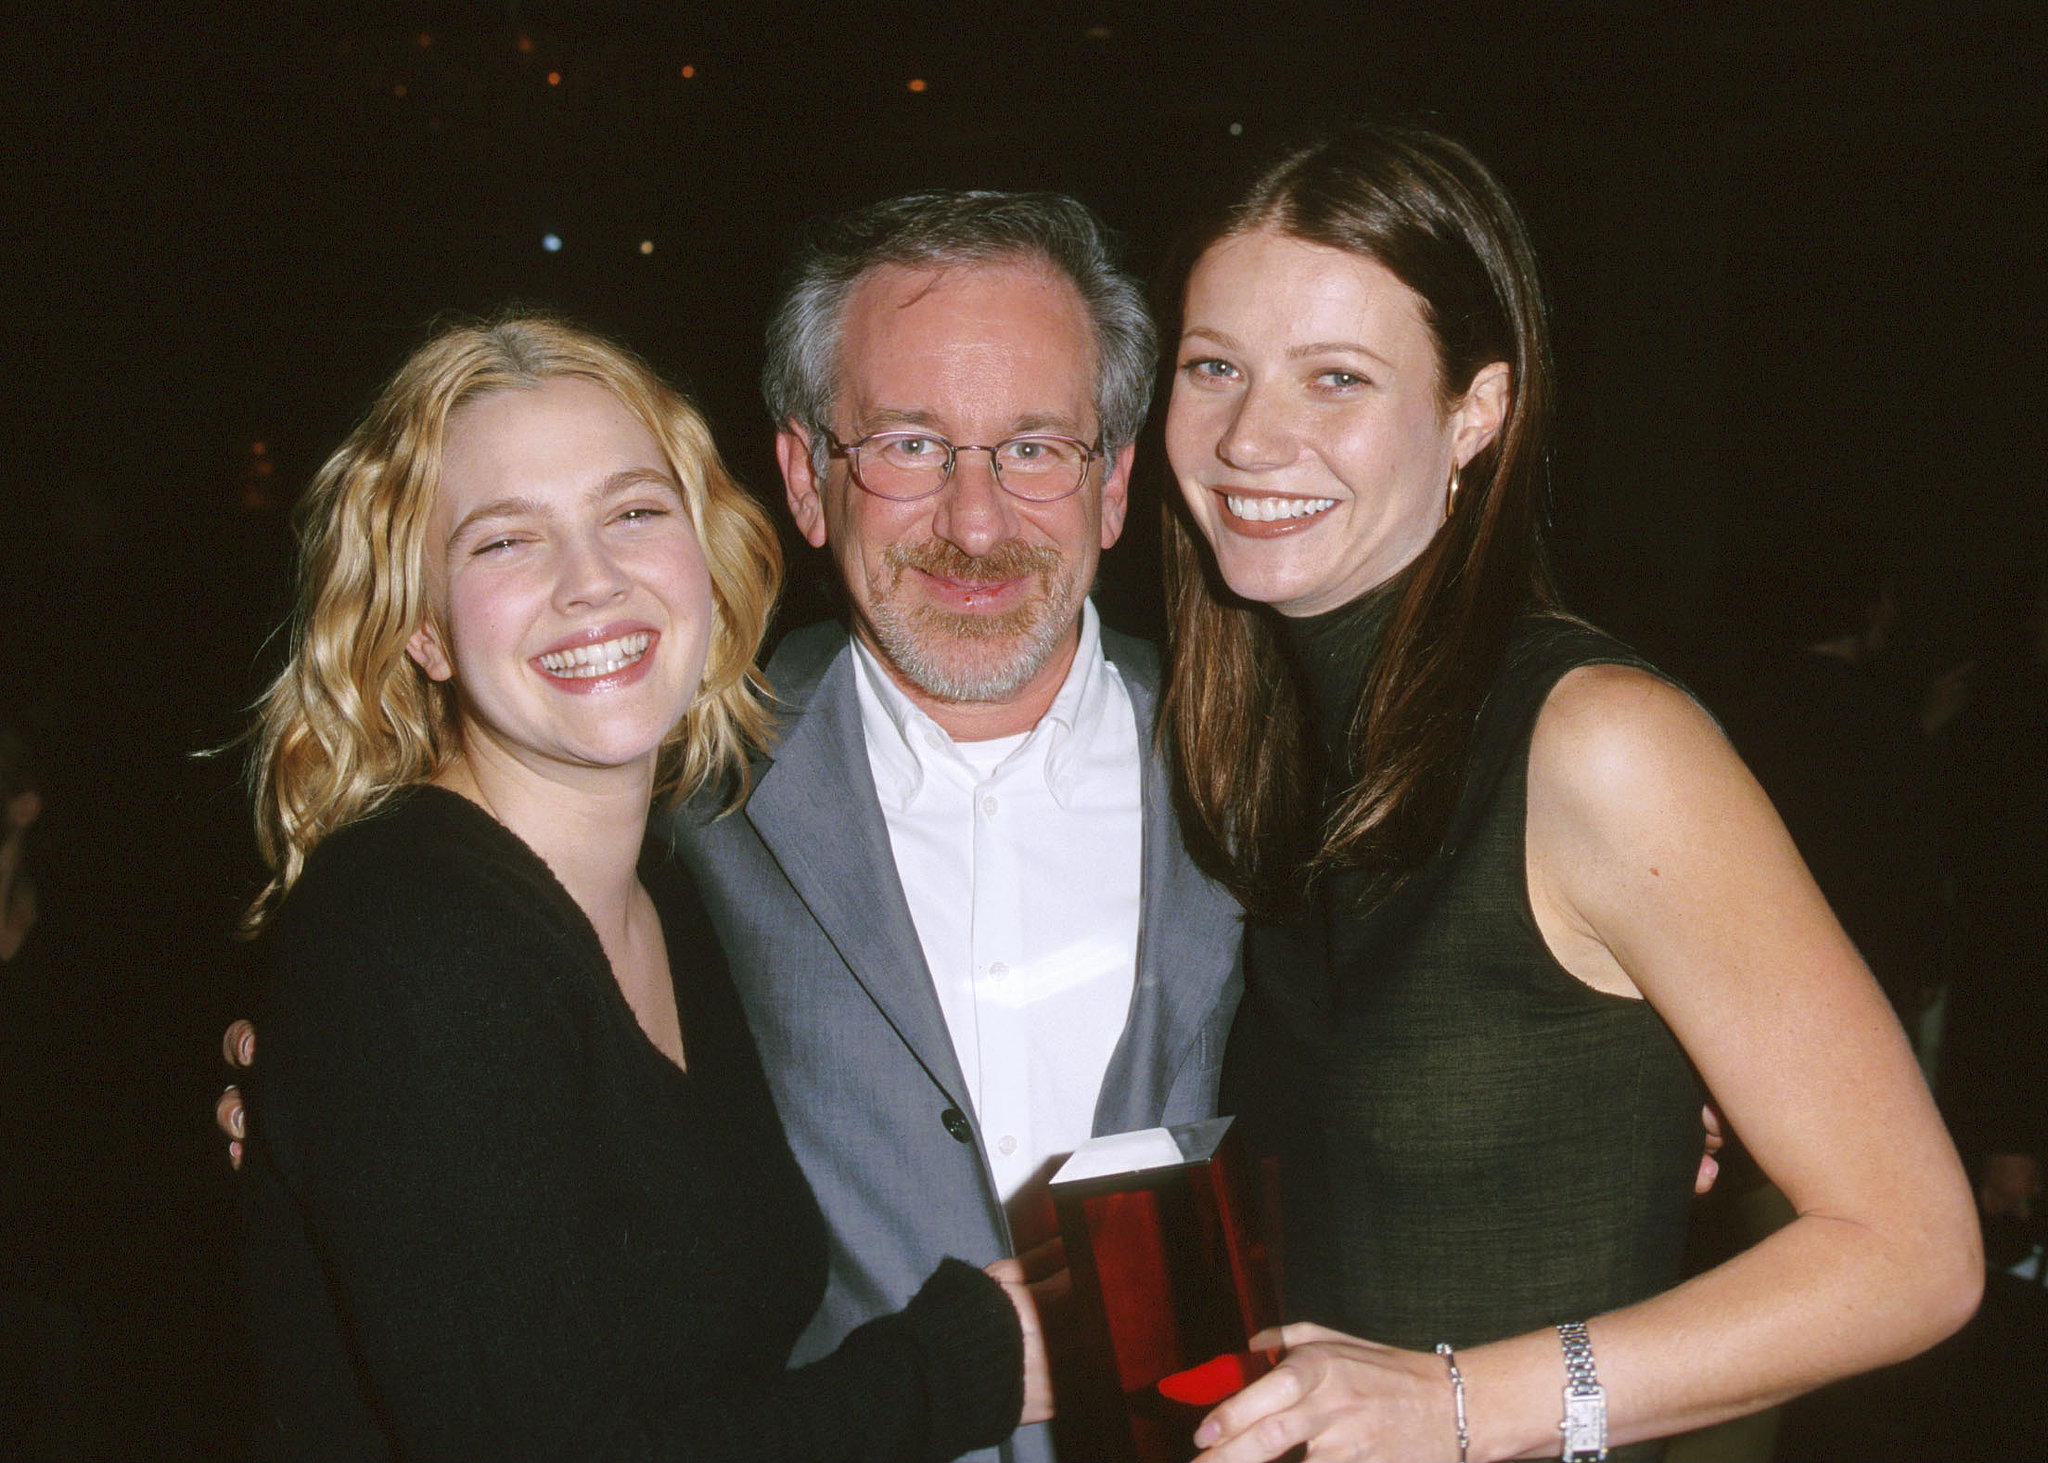 """. . . Steven Spielberg! The iconic film director is close friends with Gwyneth's parents, Blythe Danner and Bruce Paltrow, and was named as her godfather when she was born. Steven also has another A-list actress to call his goddaughter: Drew Barrymore. He helped Drew land her breakout role in E.T. the Extra-Terrestrial at just 7 years old, and when she posed for Playboy in 1995, Steven famously sent Drew a quilt for her 20th birthday with a note that read, """"Cover yourself up."""" In addition to her famous godfather, Drew's also got a legendary godmother in. . ."""